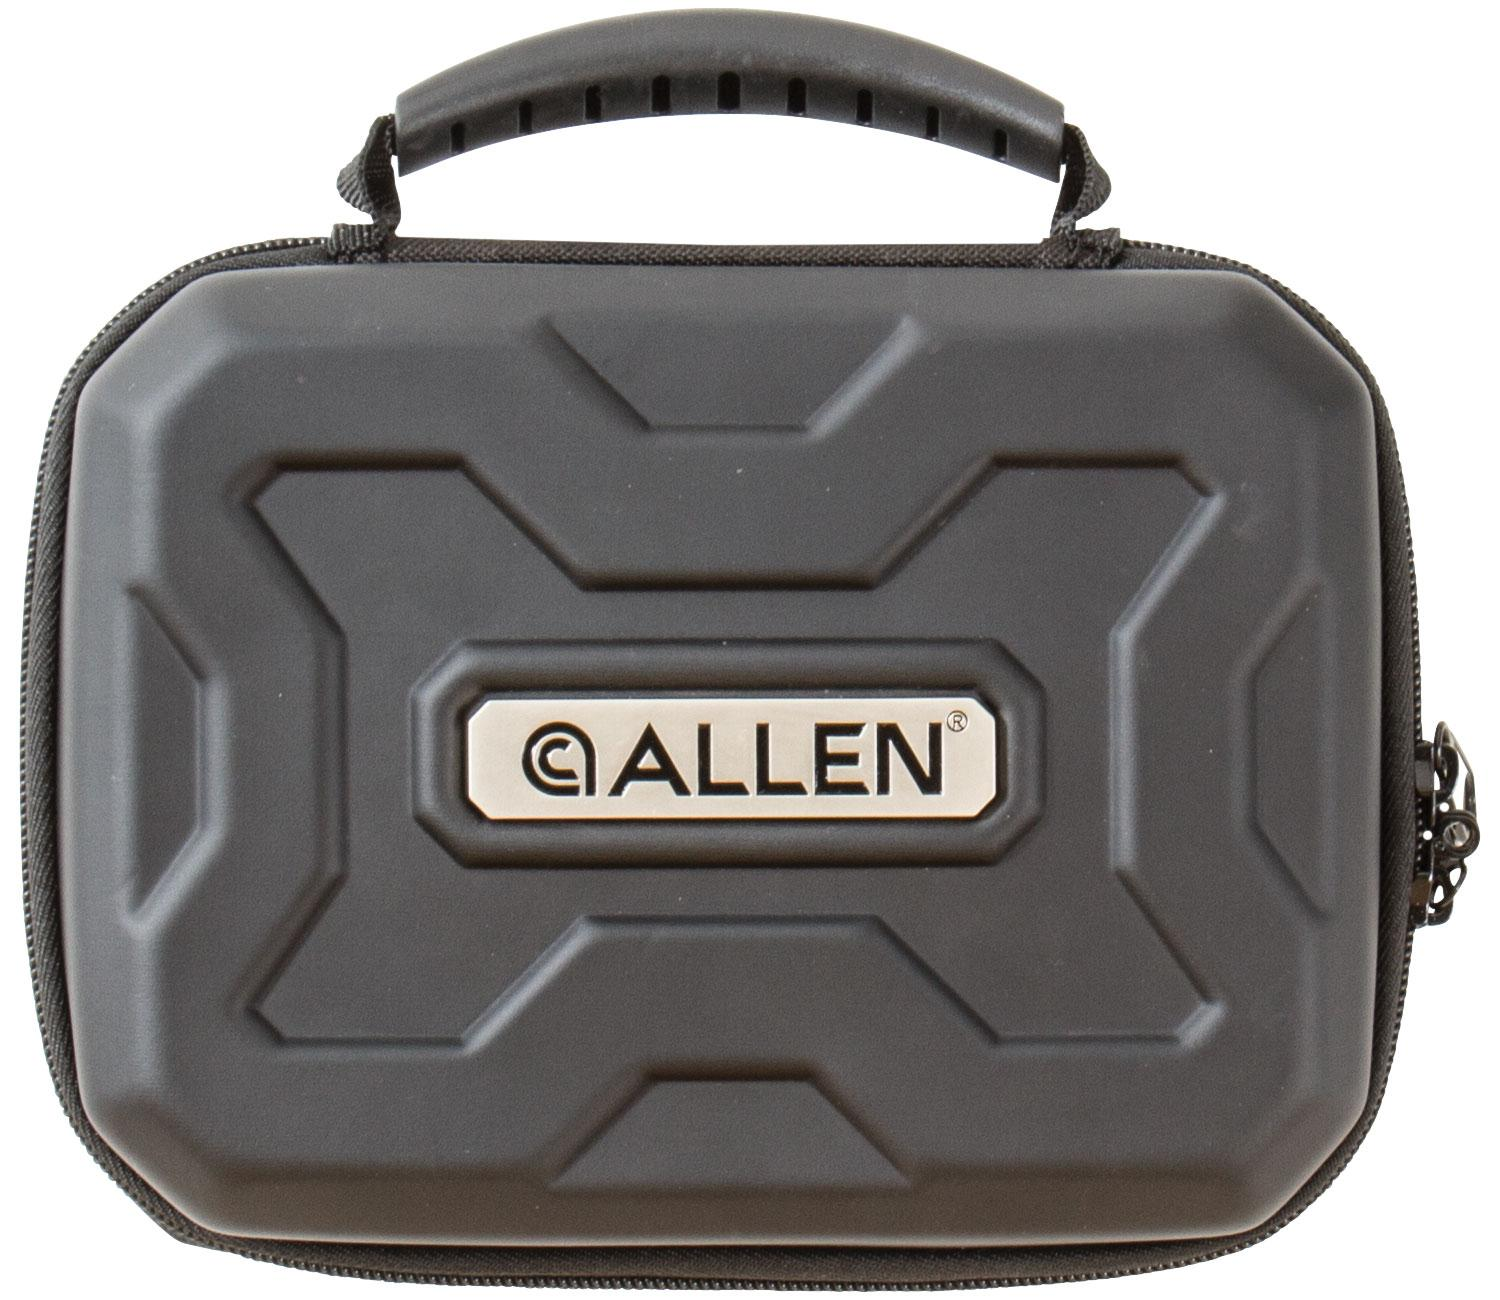 Allen 827 Exo Handgun Case Polymer Rugged Black 7